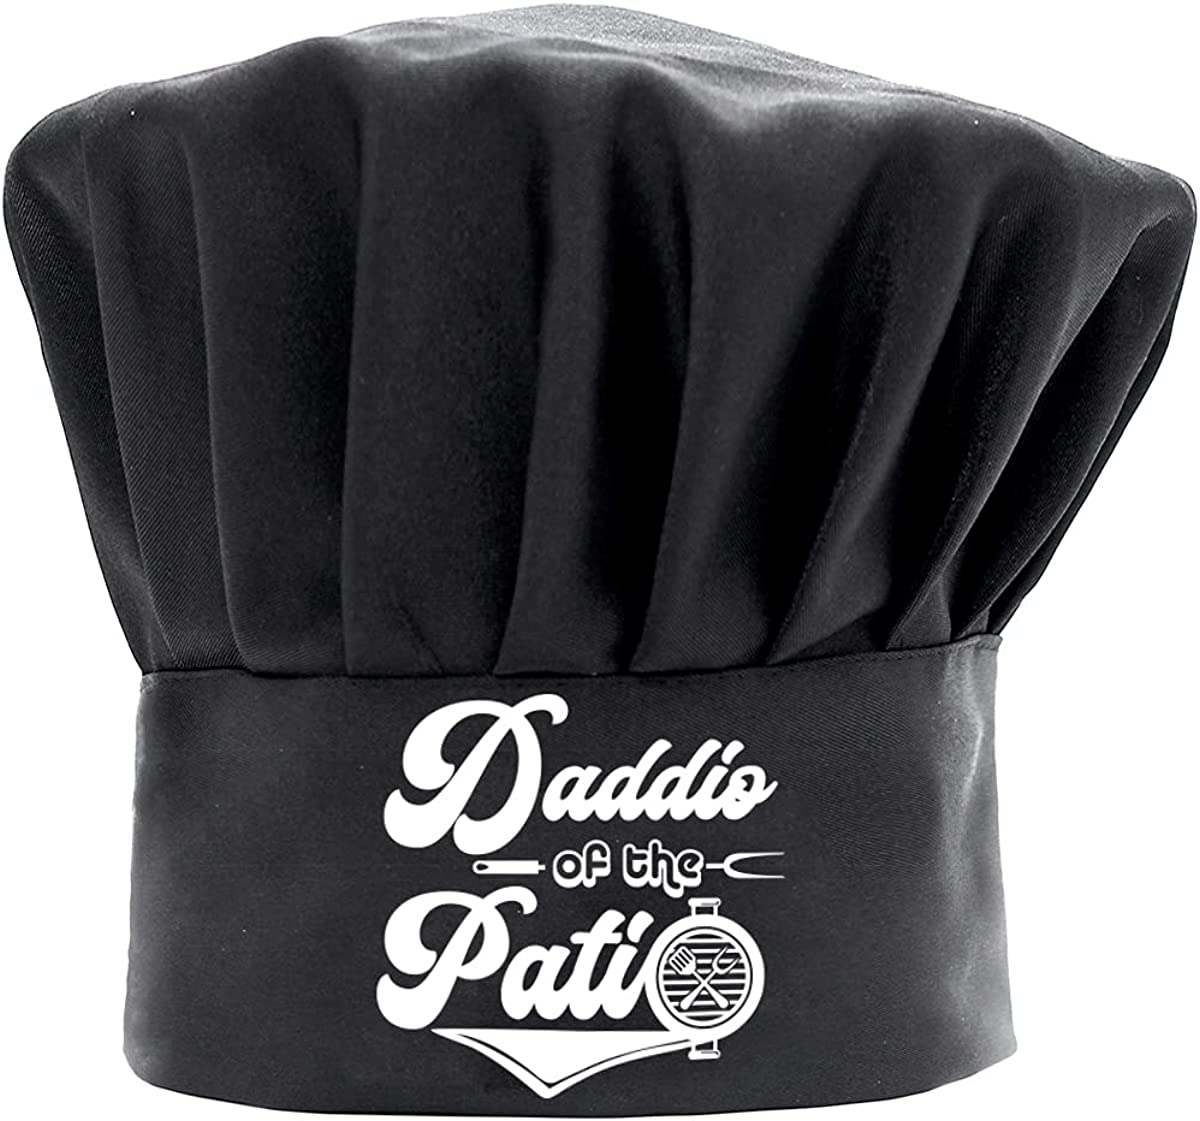 Chef Hats for Brand new Men Father Funny service The of Black Cookin Daddio Patio